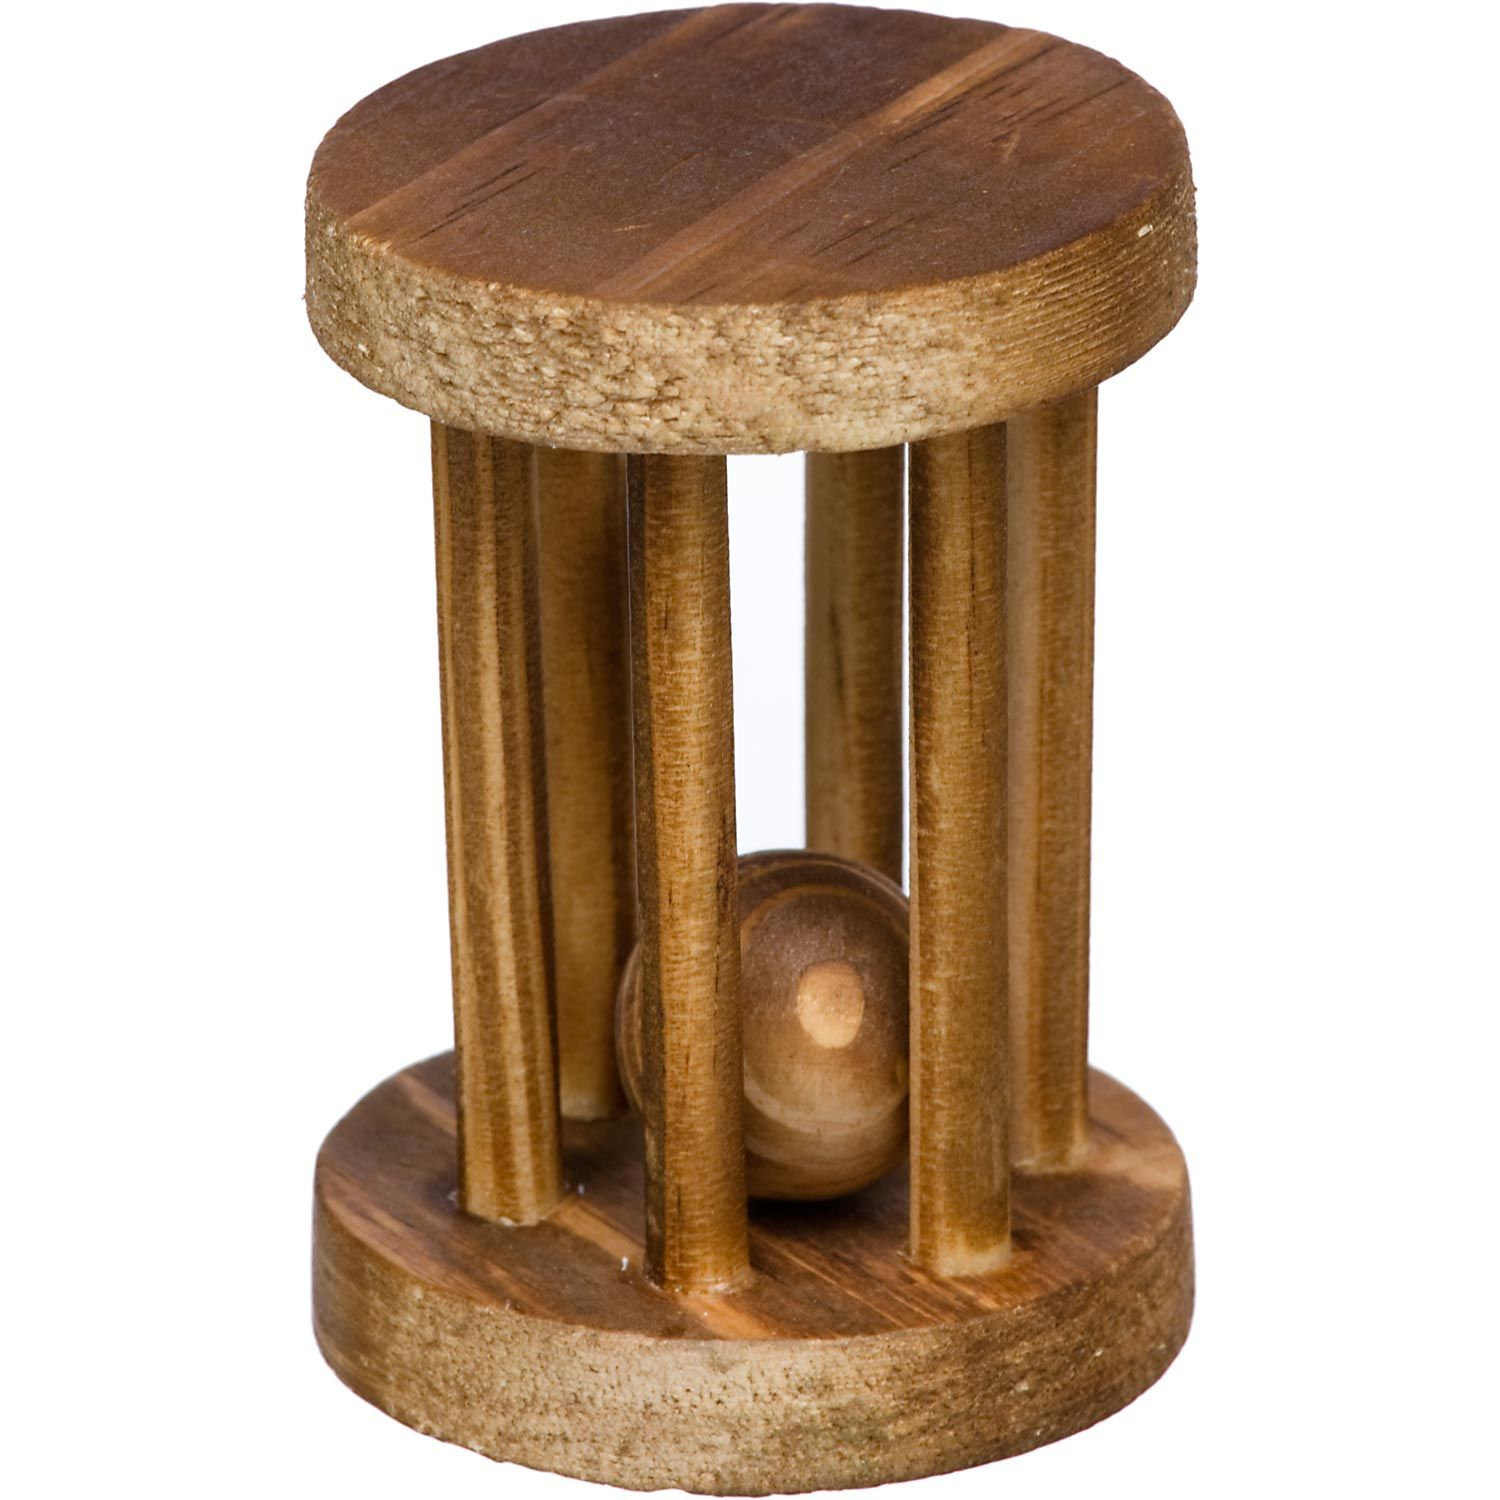 Petco Wood Wheel with Ball Small Animal Chew Toy